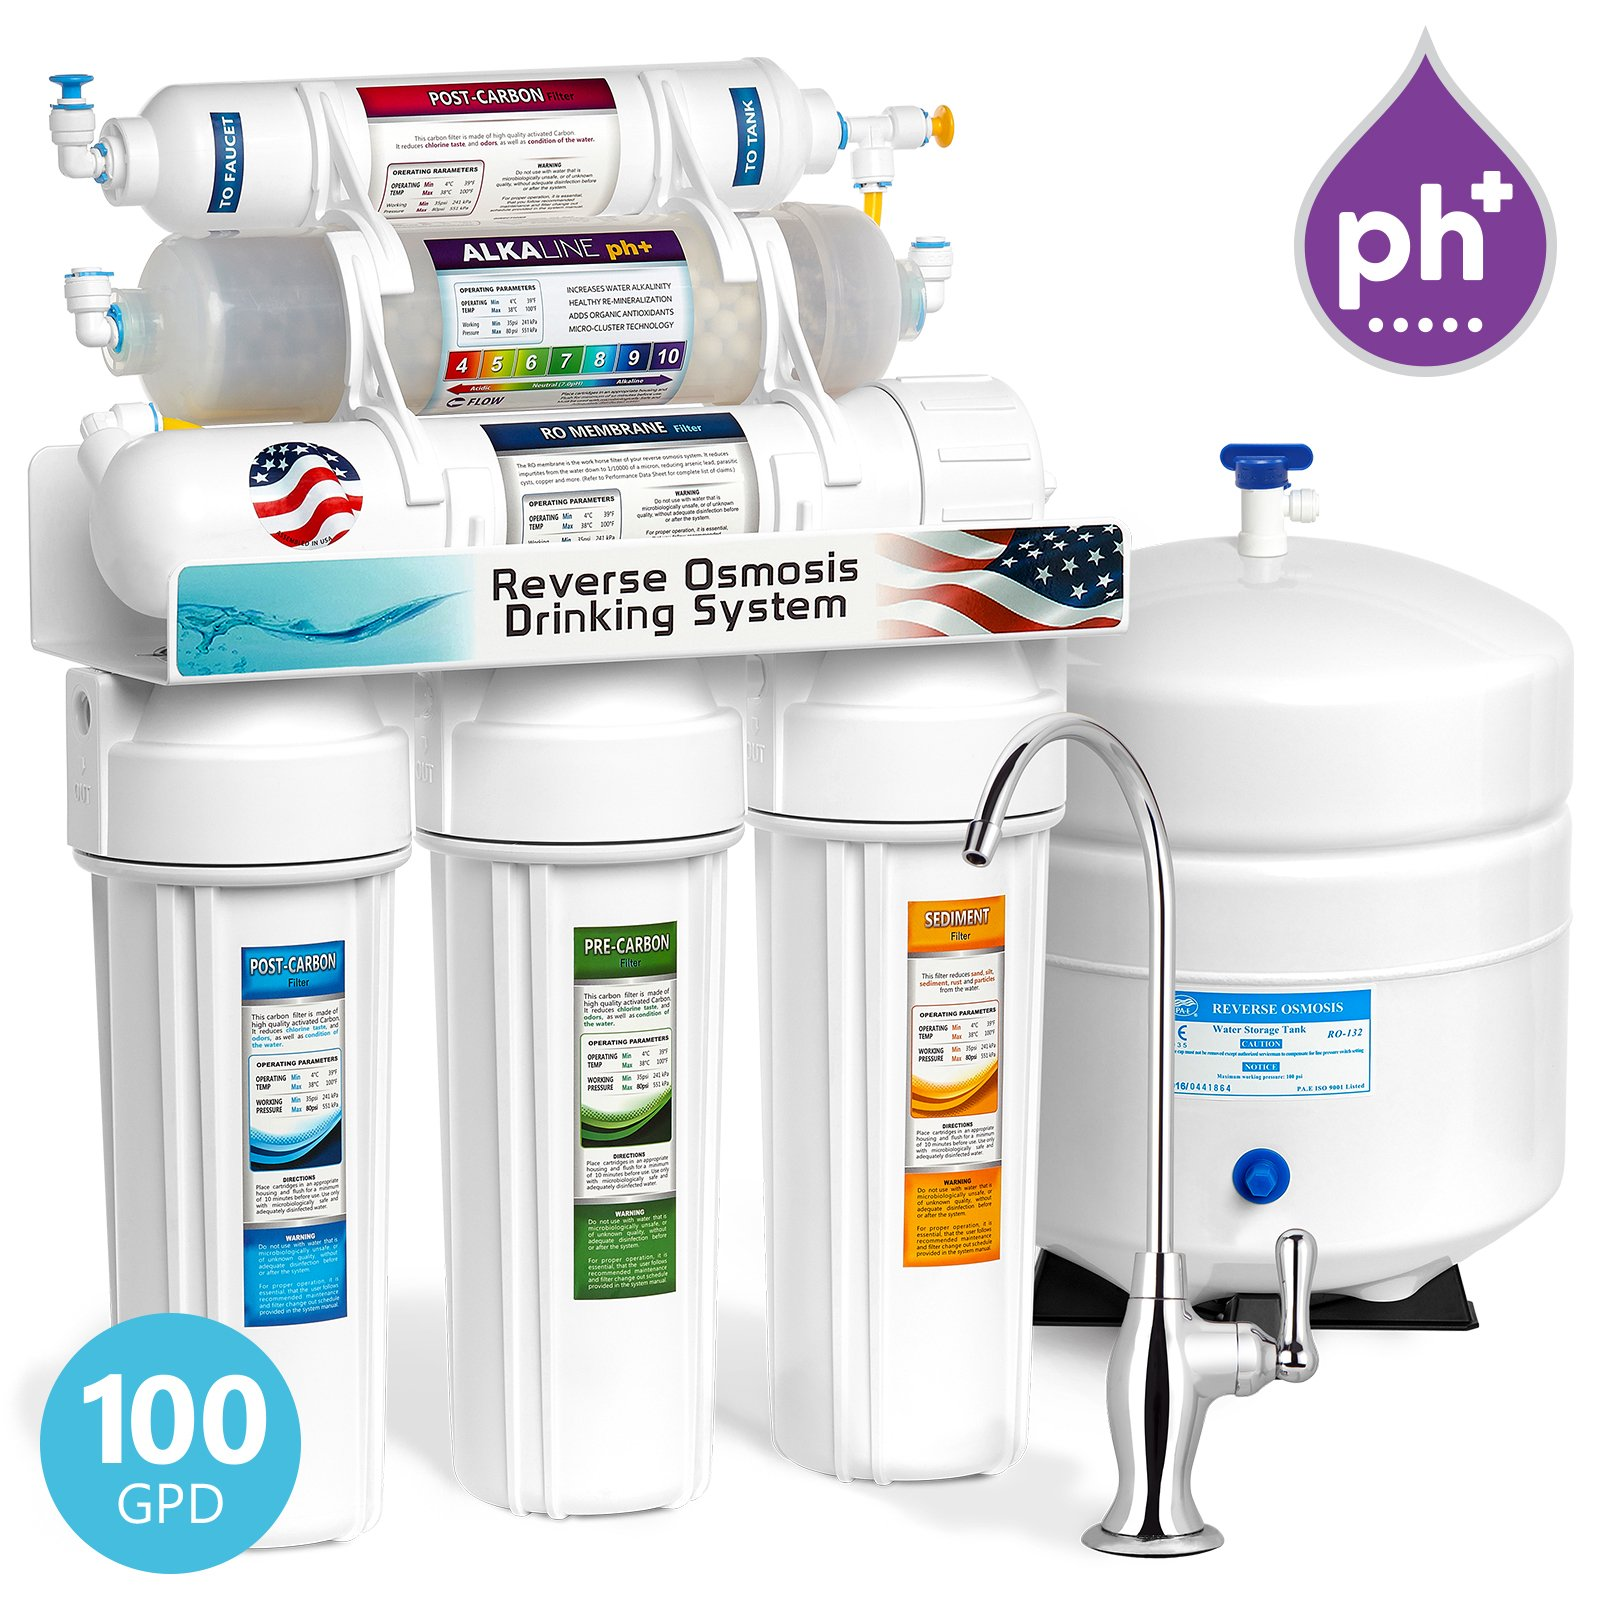 Express Water 10 Stage Home Drinking Water Filtration System Alkaline Mineral Antioxidant + Reverse Osmosis 100 GPD RO Membrane Deluxe Chrome Faucet Residential Under Sink Water Purification ROALK10D